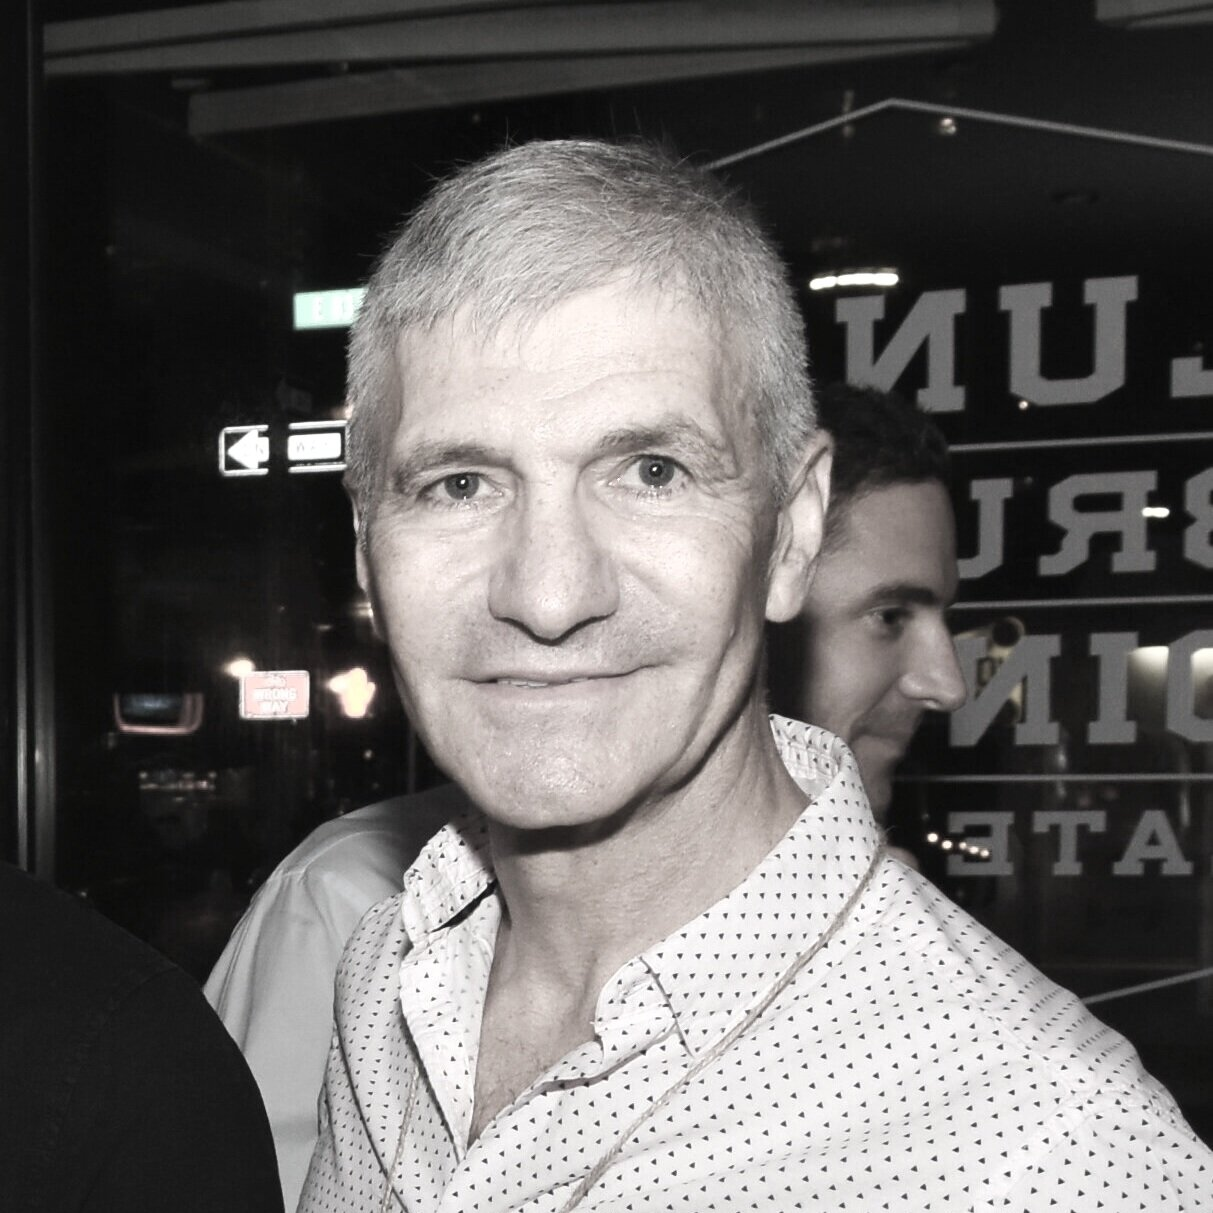 SIMON OREN    Partner   Oren is the owner and founder of Chef Driven and Tour de France Hospitality groups. Oren's brands and concepts are mainstays of contemporary New York dining and socializing with a strong emphasis on design, food, beverage and enlightened service.